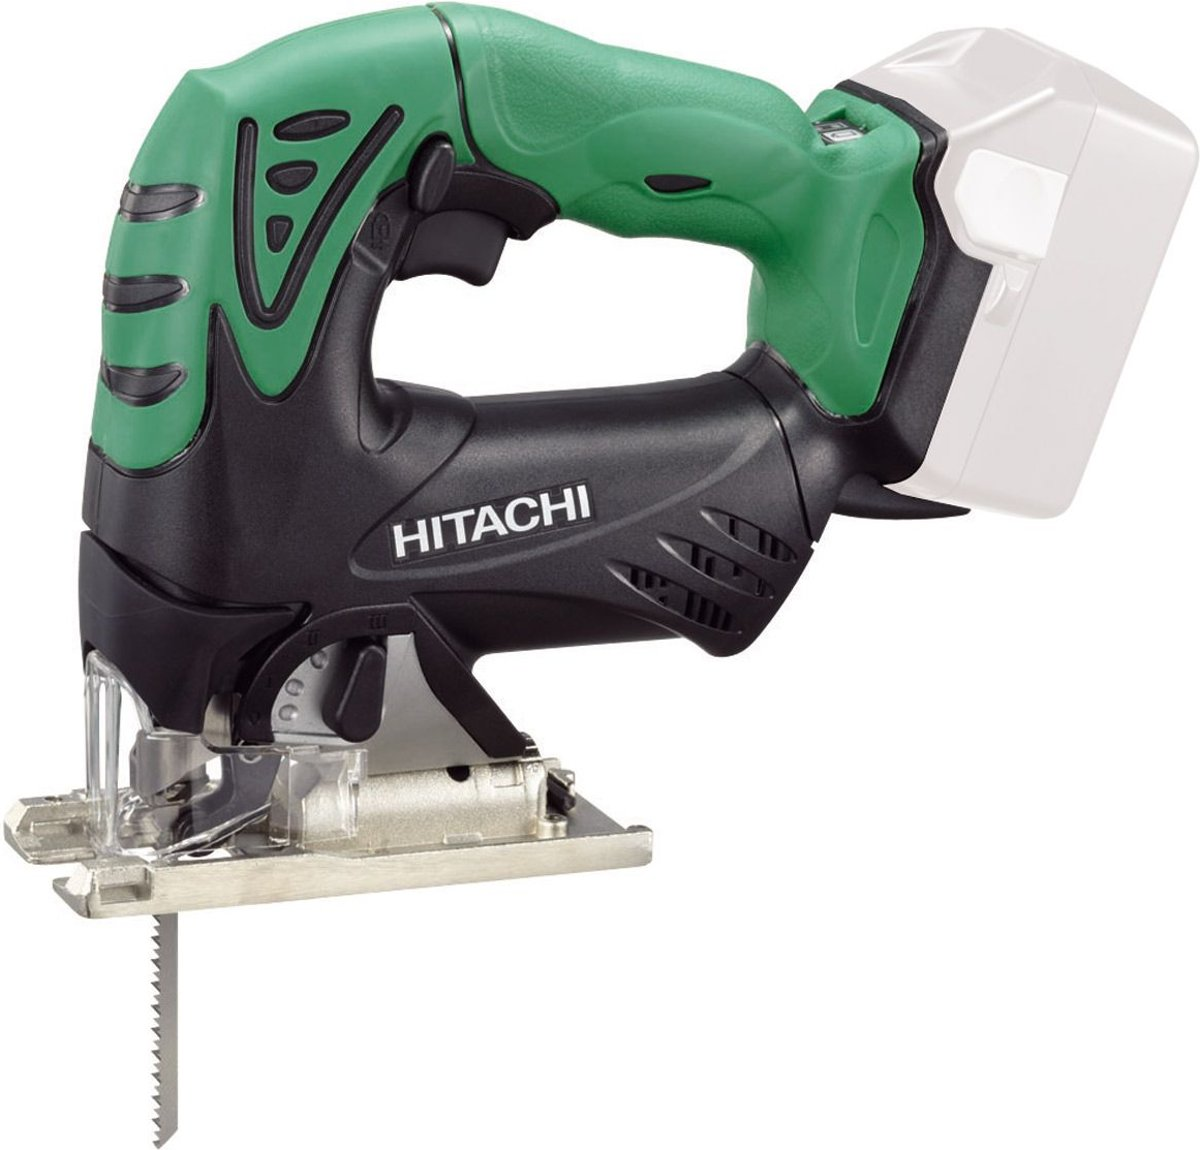 Hitachi CJ18DSL